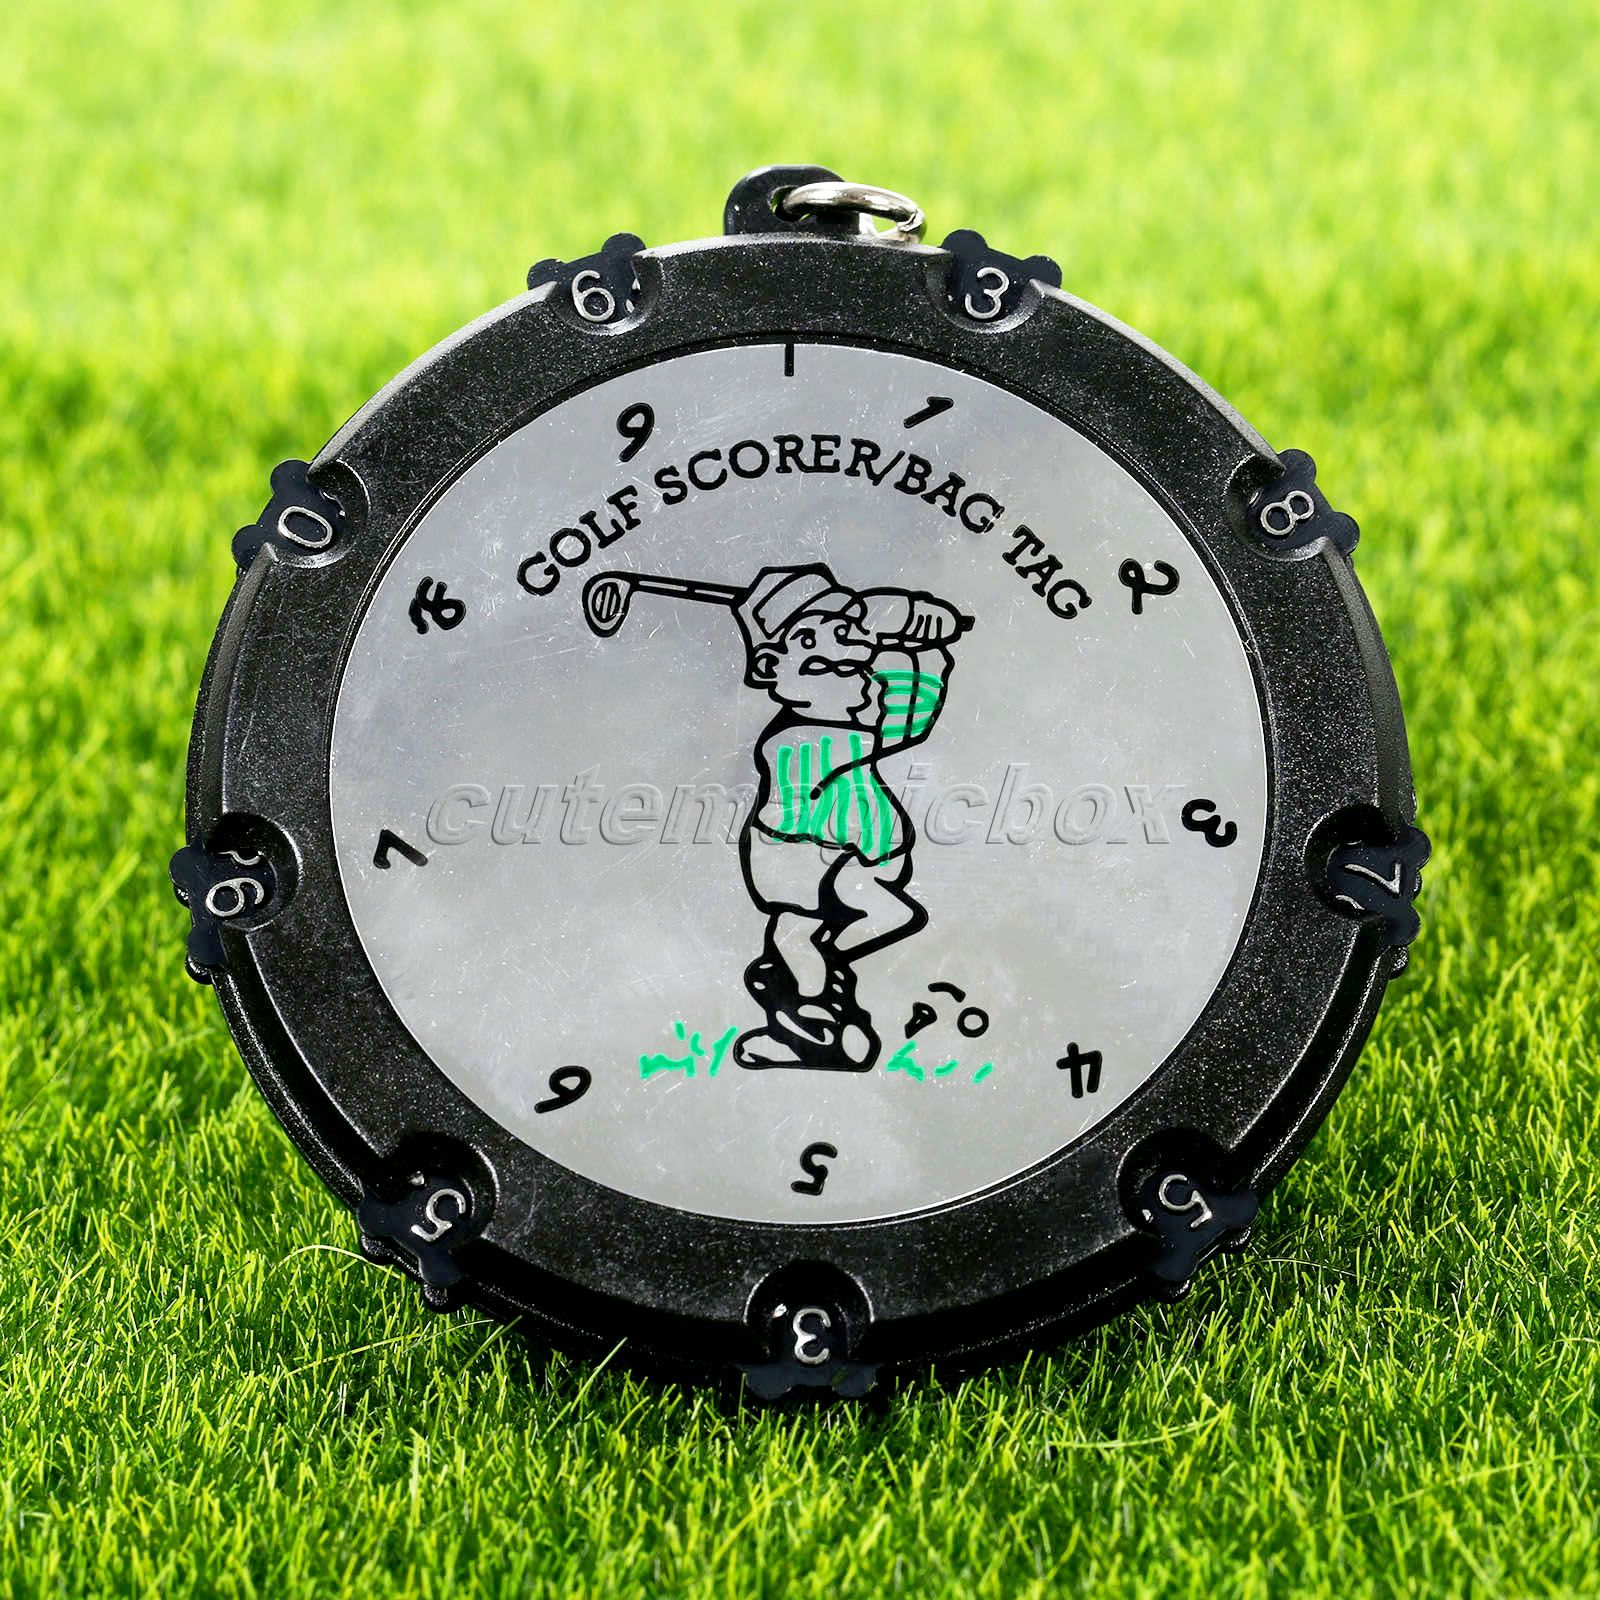 1Pc Golf Training Aids 18 Hole Golf Stroke Shot Putt Scoring Tag Keeper Score Counter With Key Chain Golf Accessories Keychains